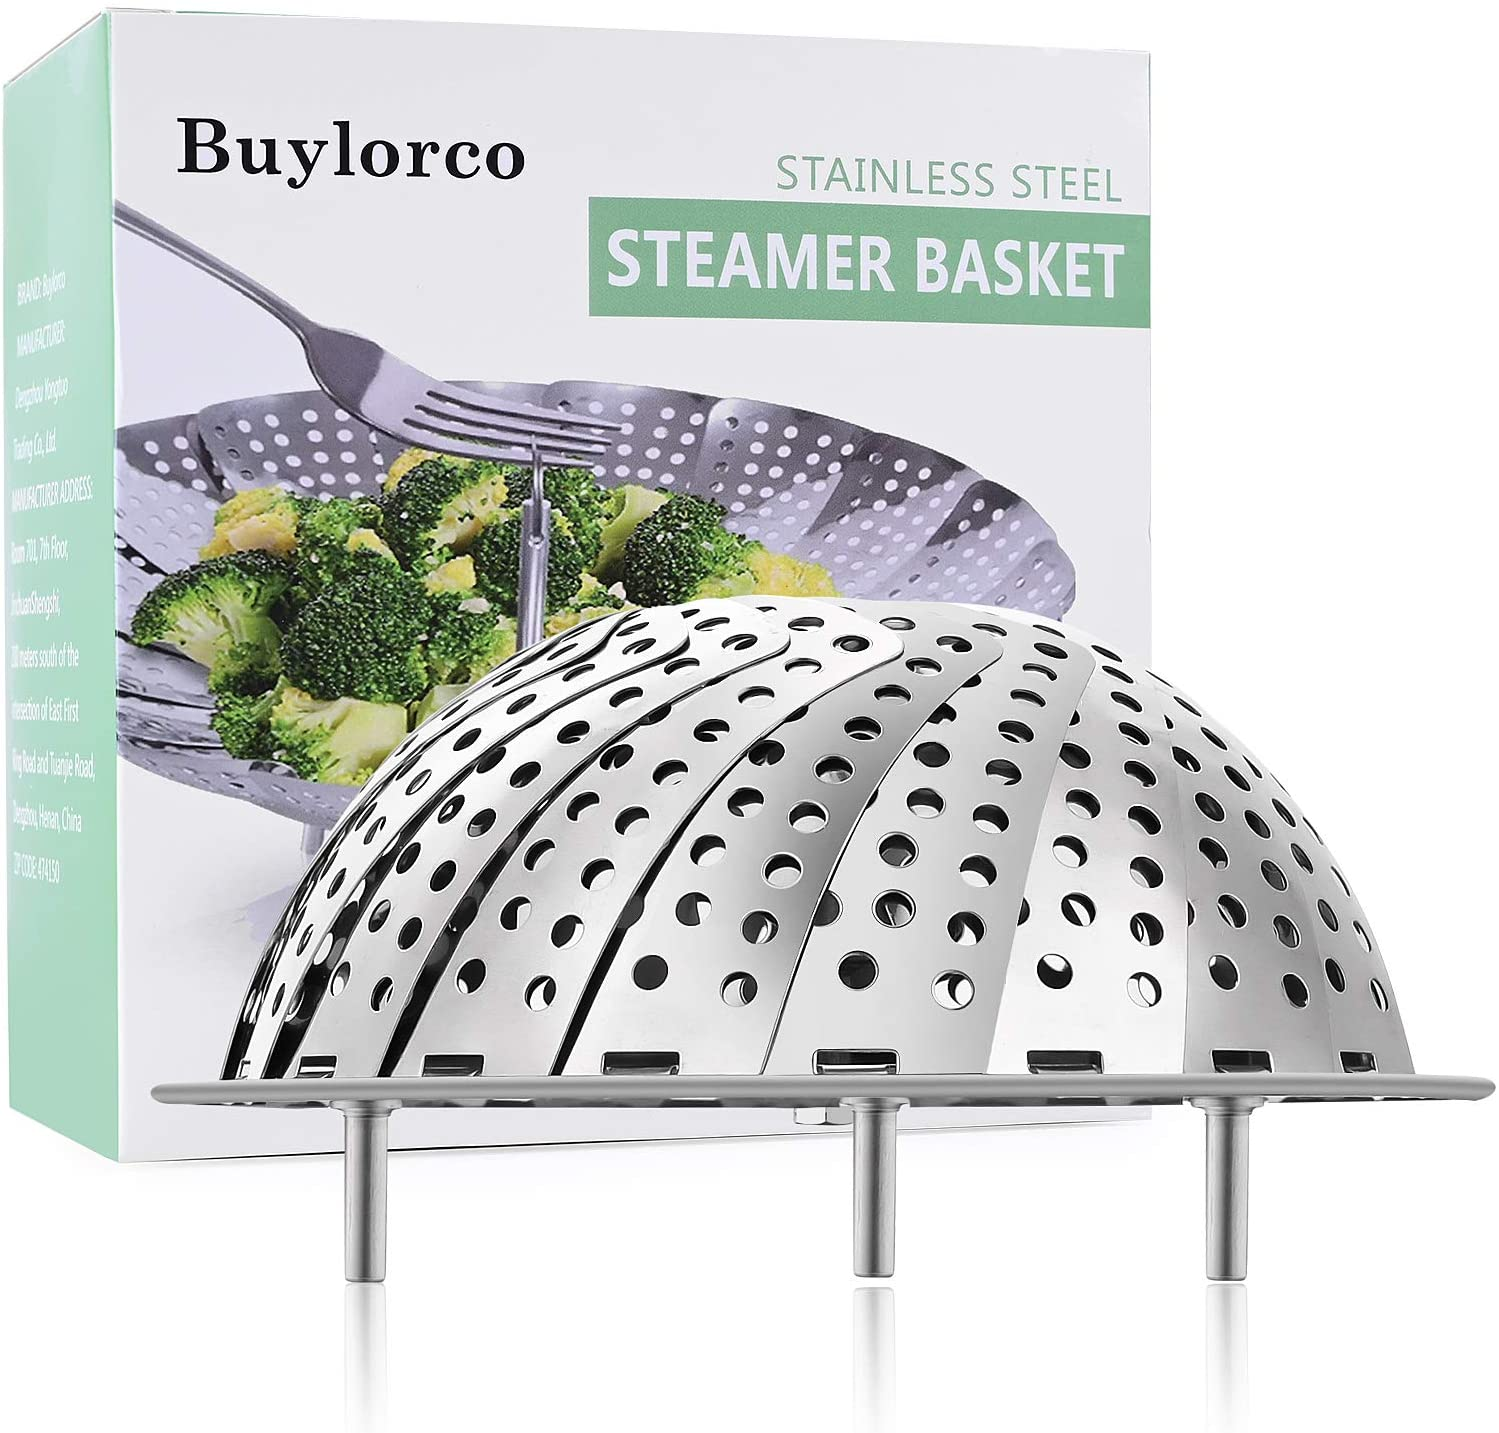 Buylorco Steamer Basket Stainless Steel Folding Vegetable Steamer Insert Steamer Cookware for Veggie Seafood Cooking (fit for 5